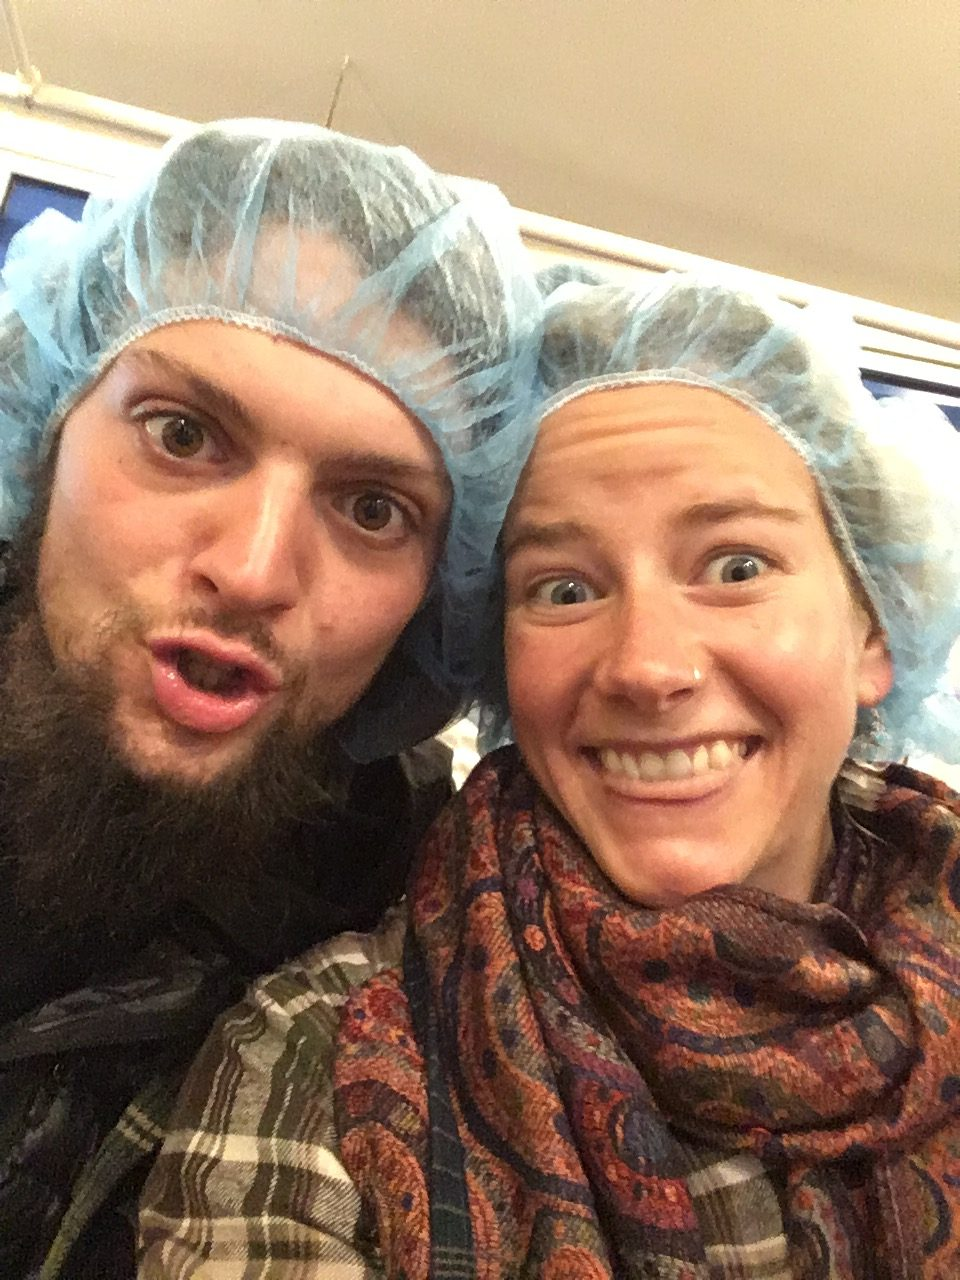 Boy and girl in hairnets